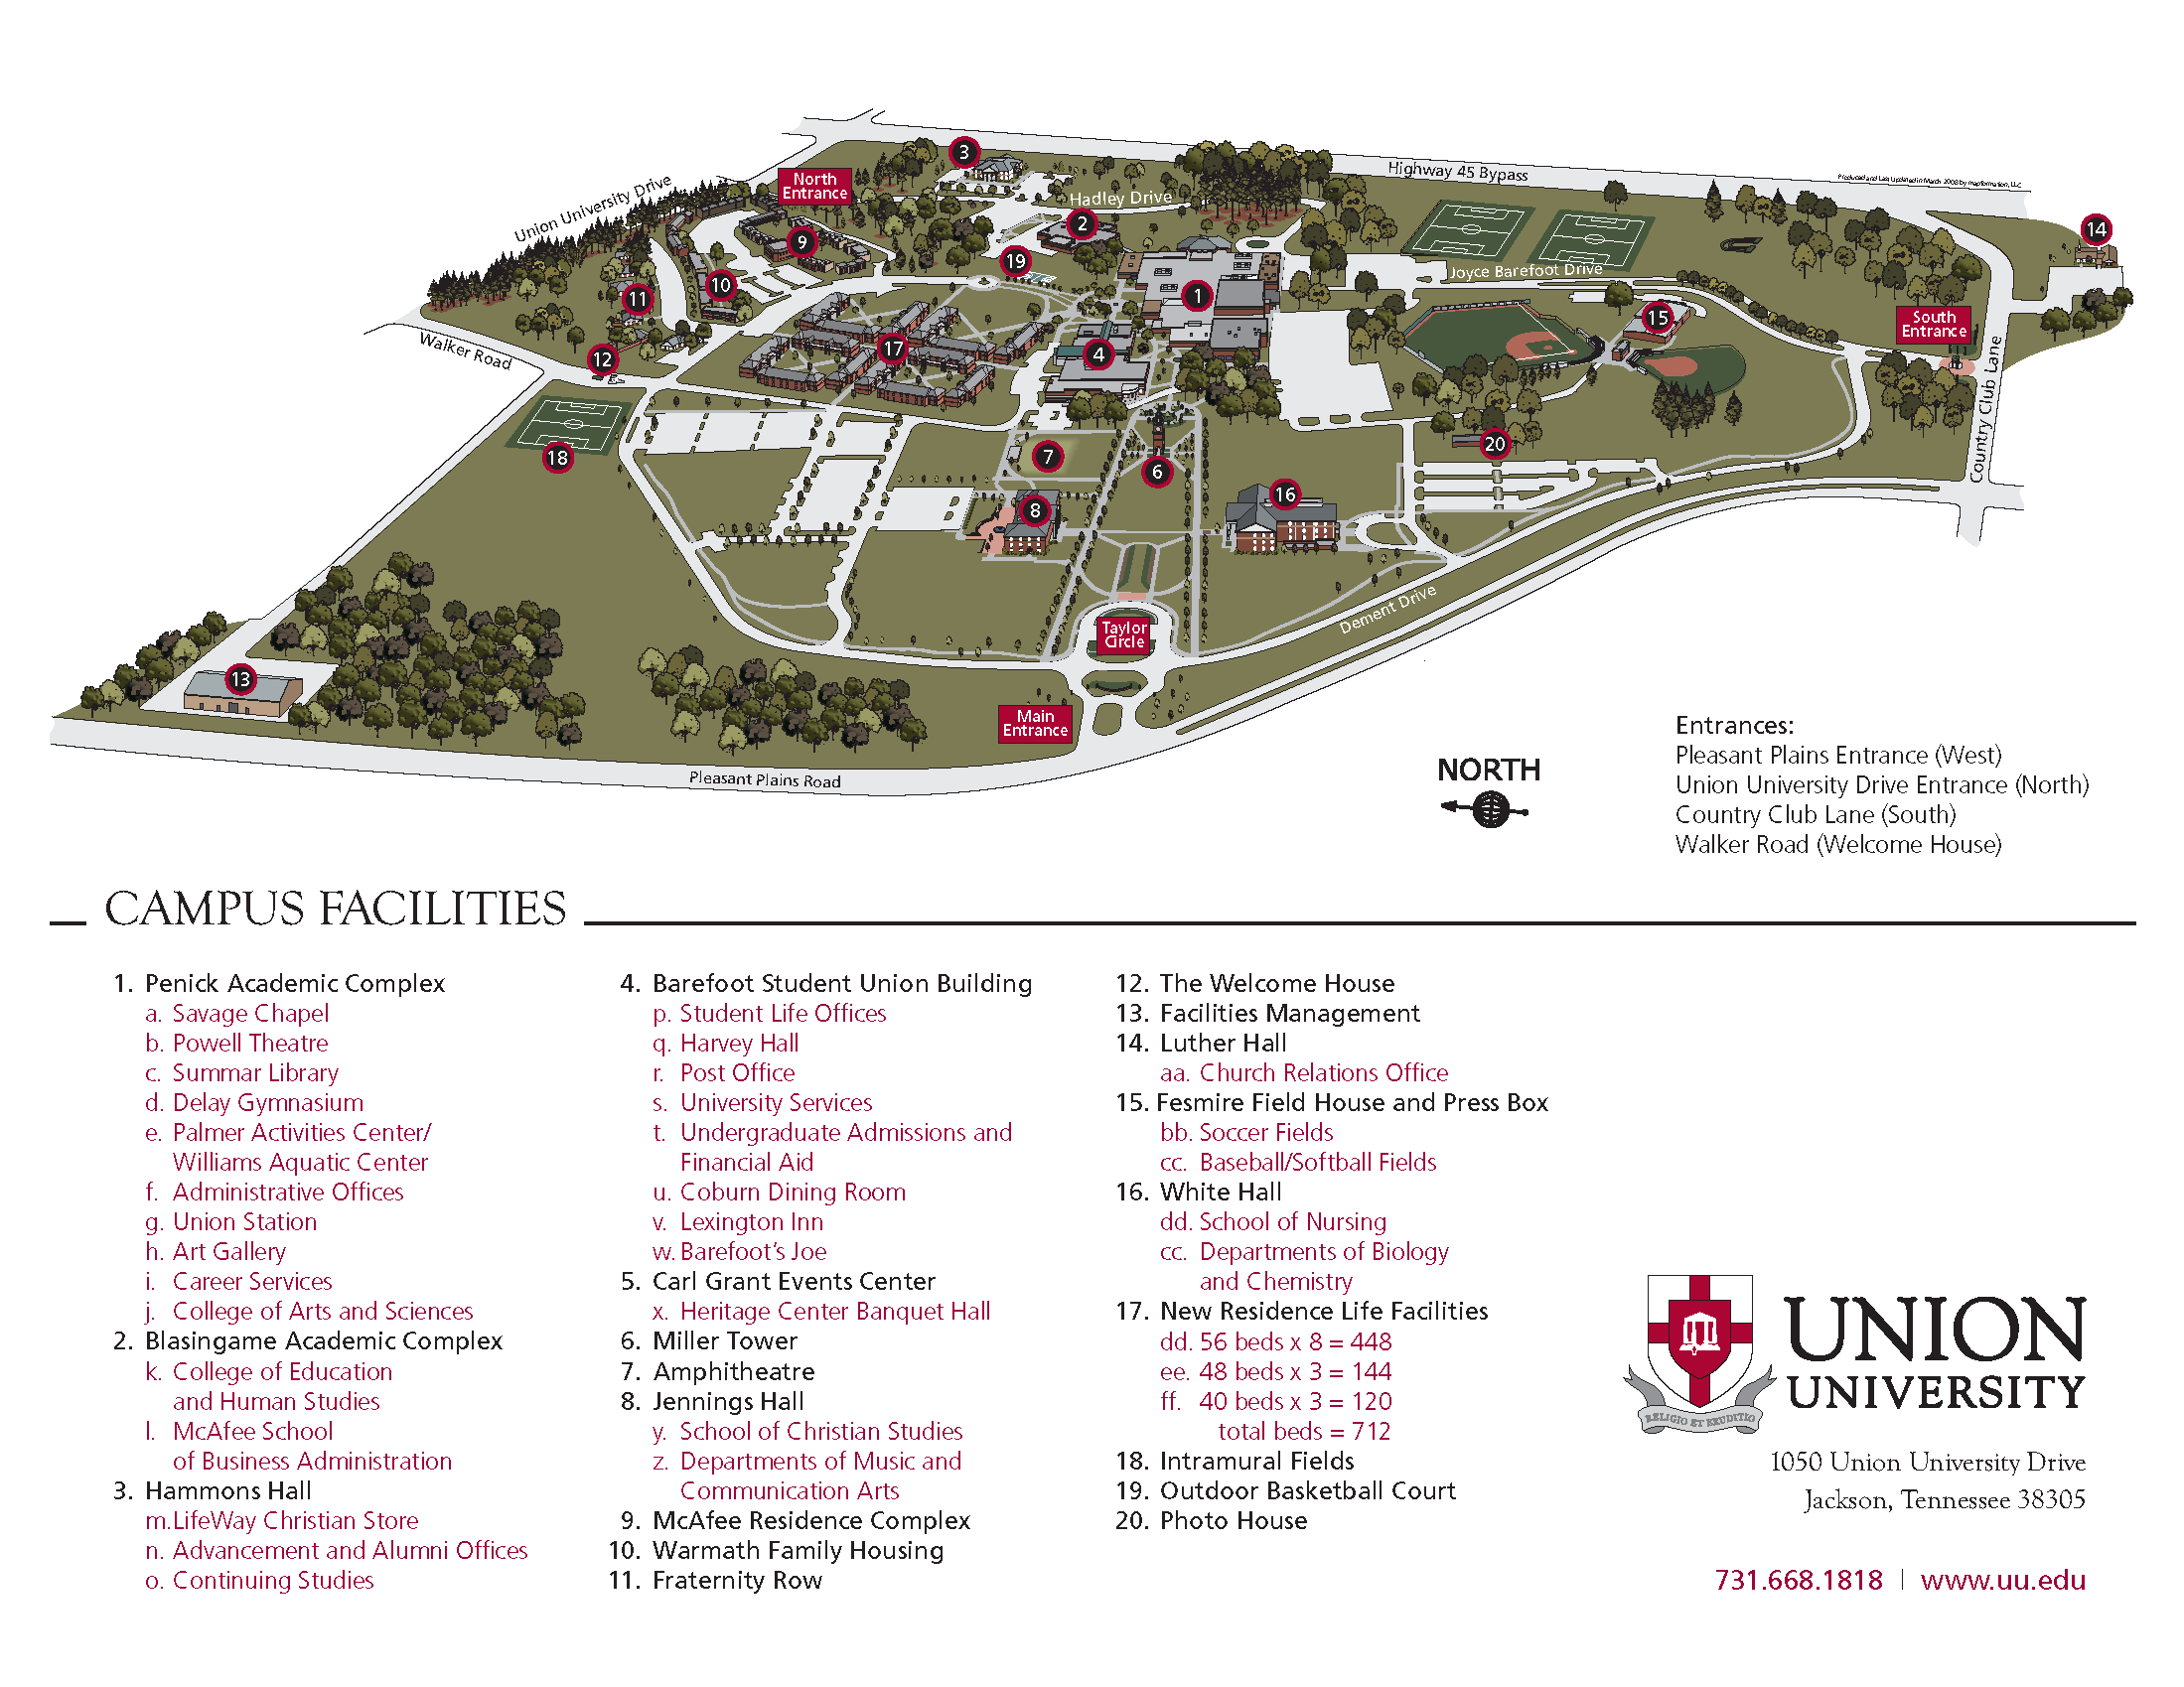 Jackson College Campus Map.Union University Jackson Campus Map 1050 Union University Drive